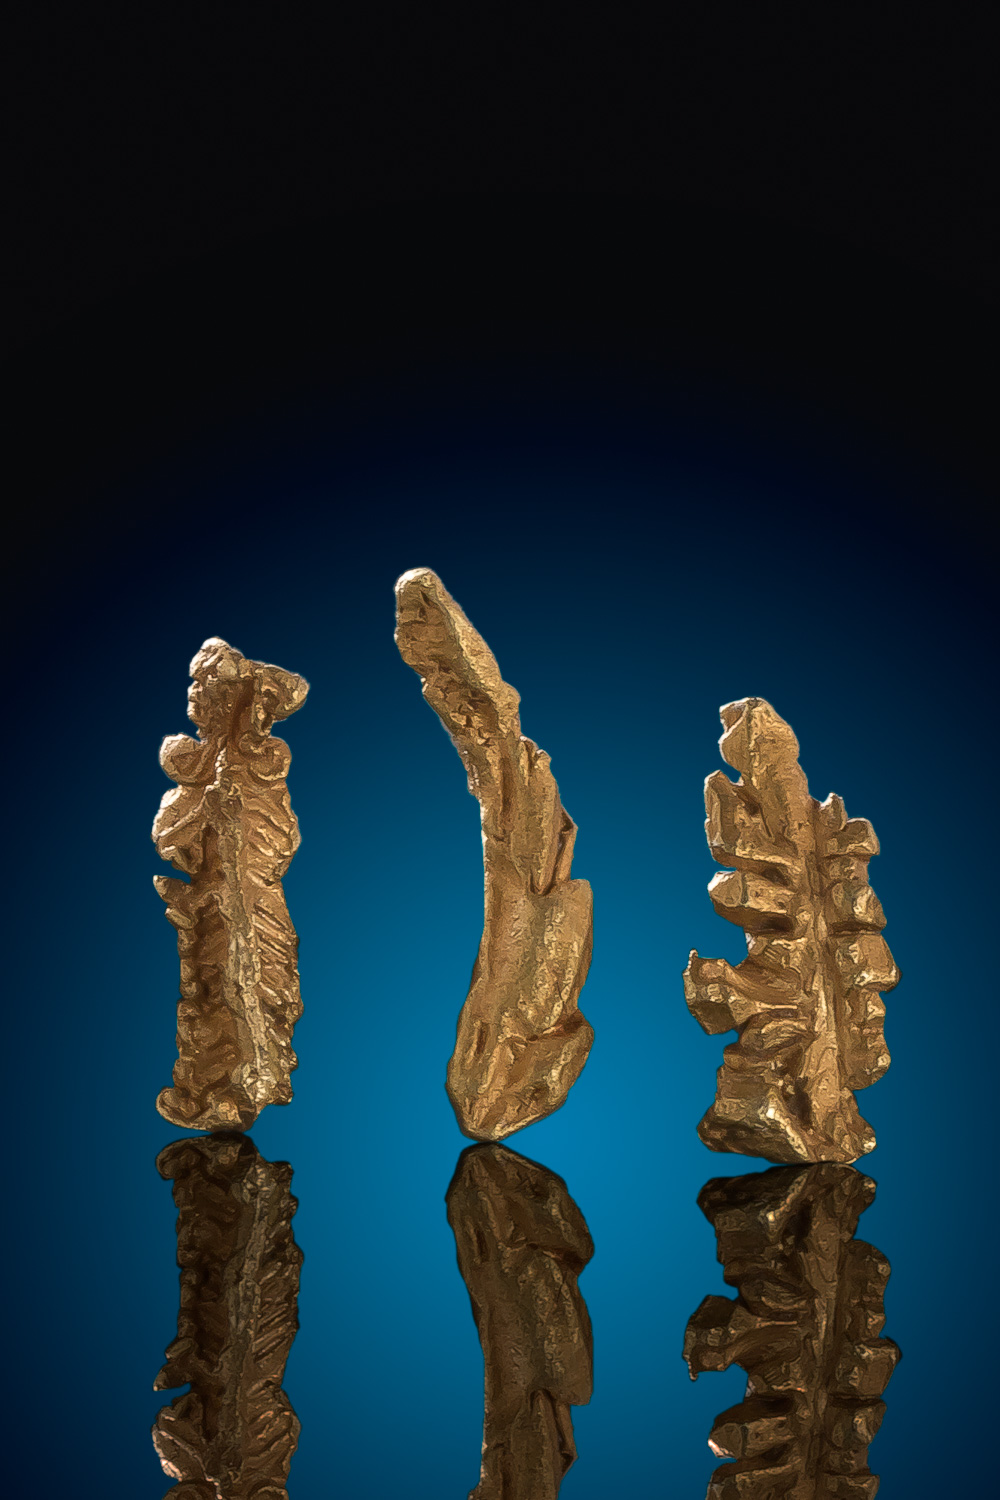 Three Crystalized Wire Gold Nugget Specimens - Arizona